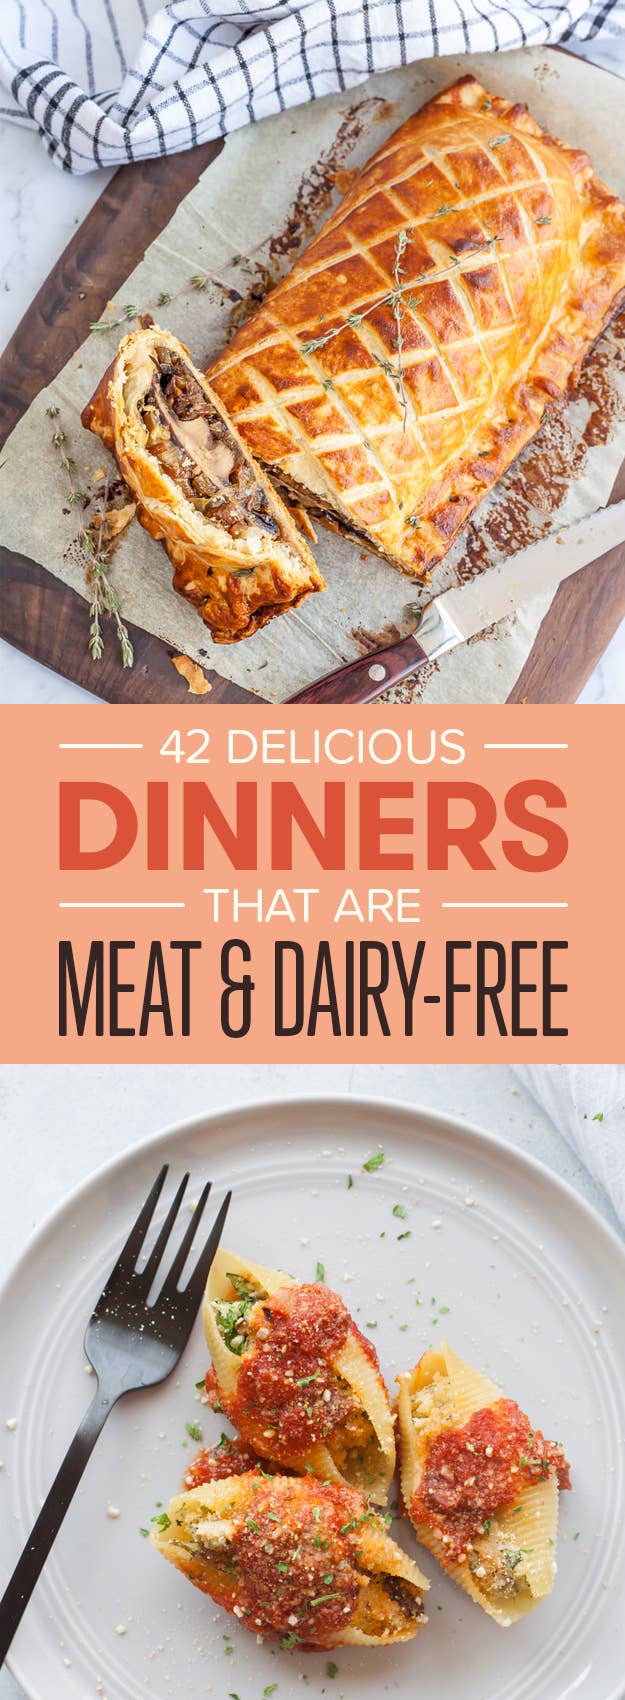 42 dinner ideas if youre trying to cut back on meat or dairy share on facebook share forumfinder Image collections